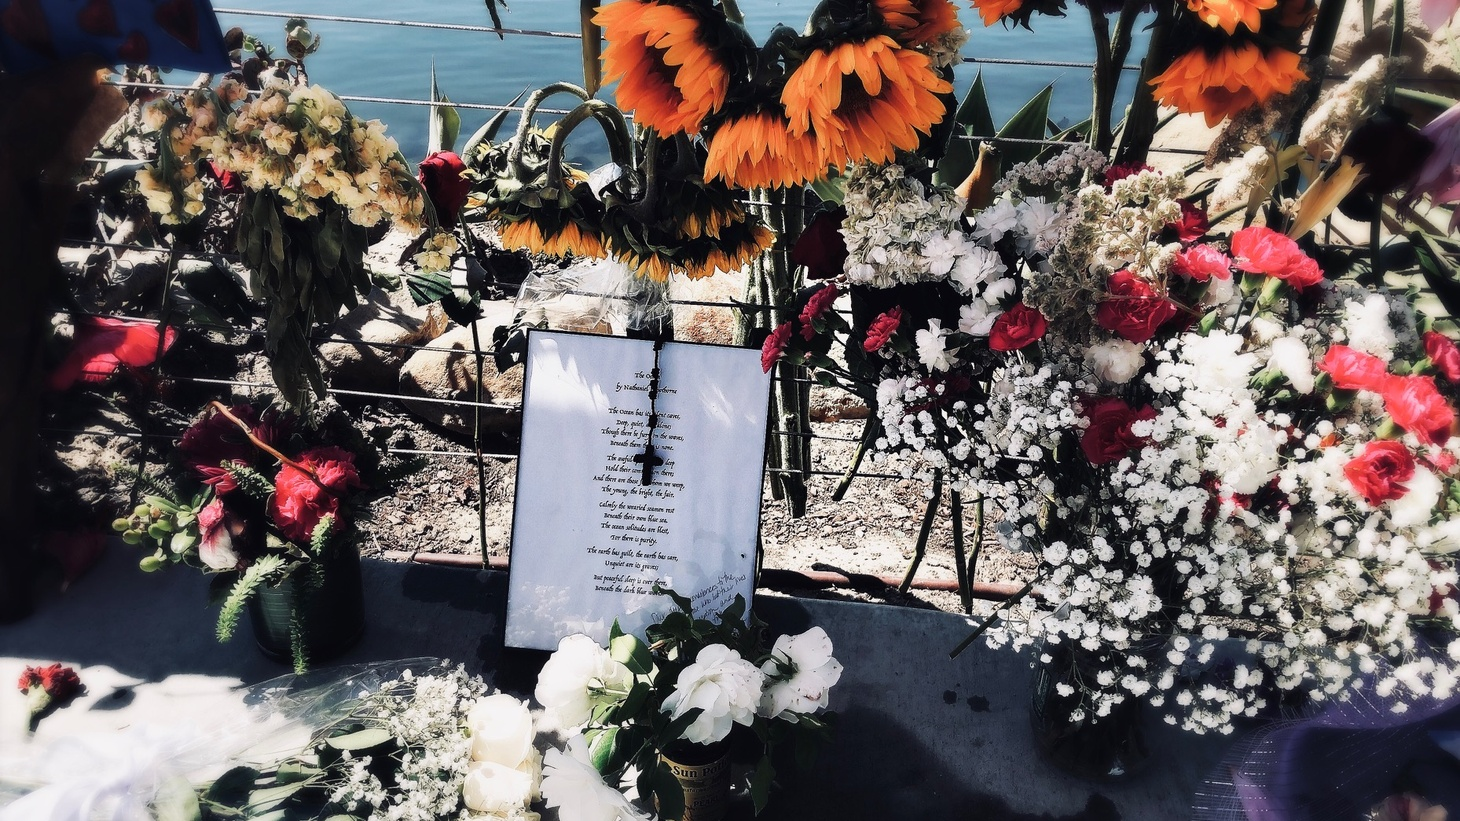 Mourners bring candles and flowers to the makeshift memorial at the Santa Barbara Harbor.